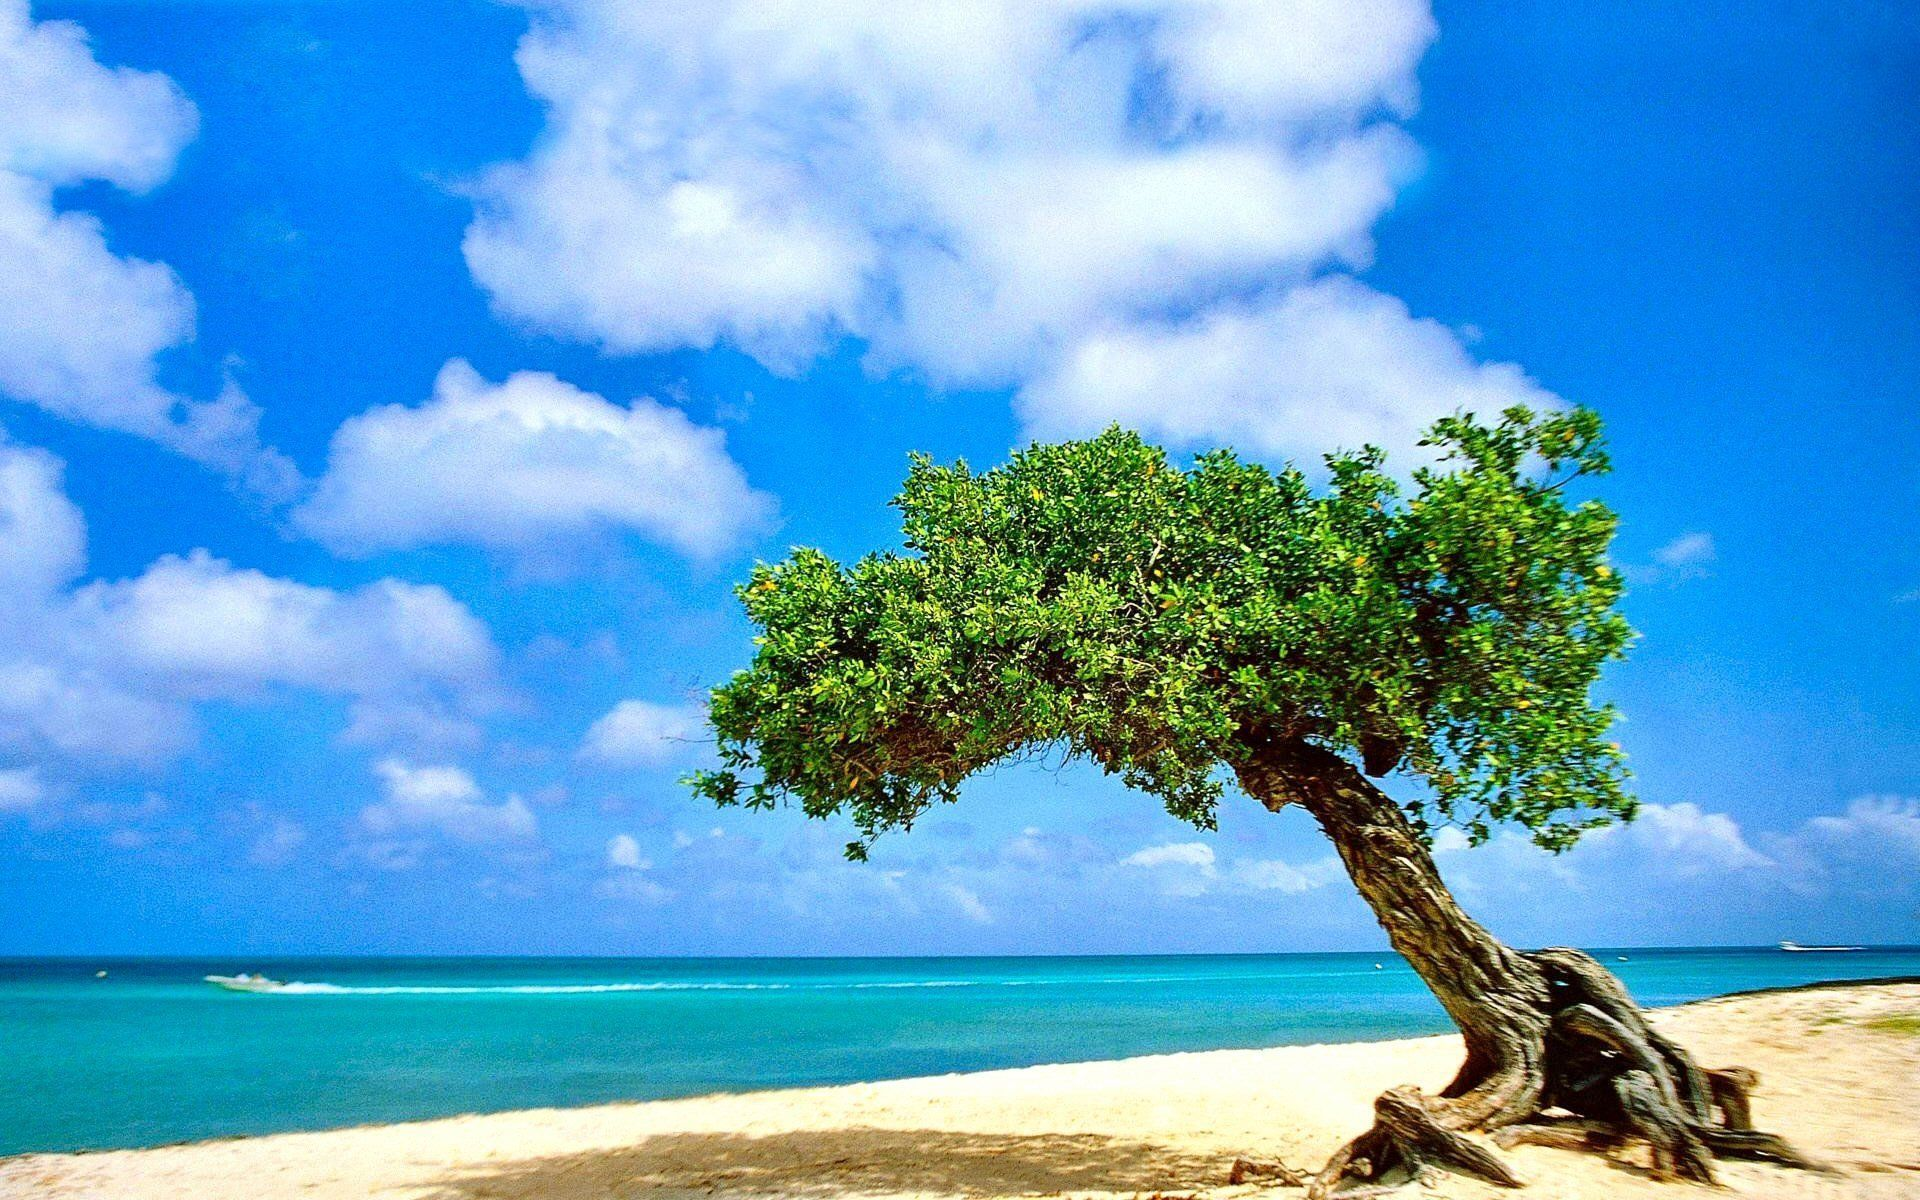 65 Aruba Beachfront Scene Desktop Wallpapers   Download at 1920x1200